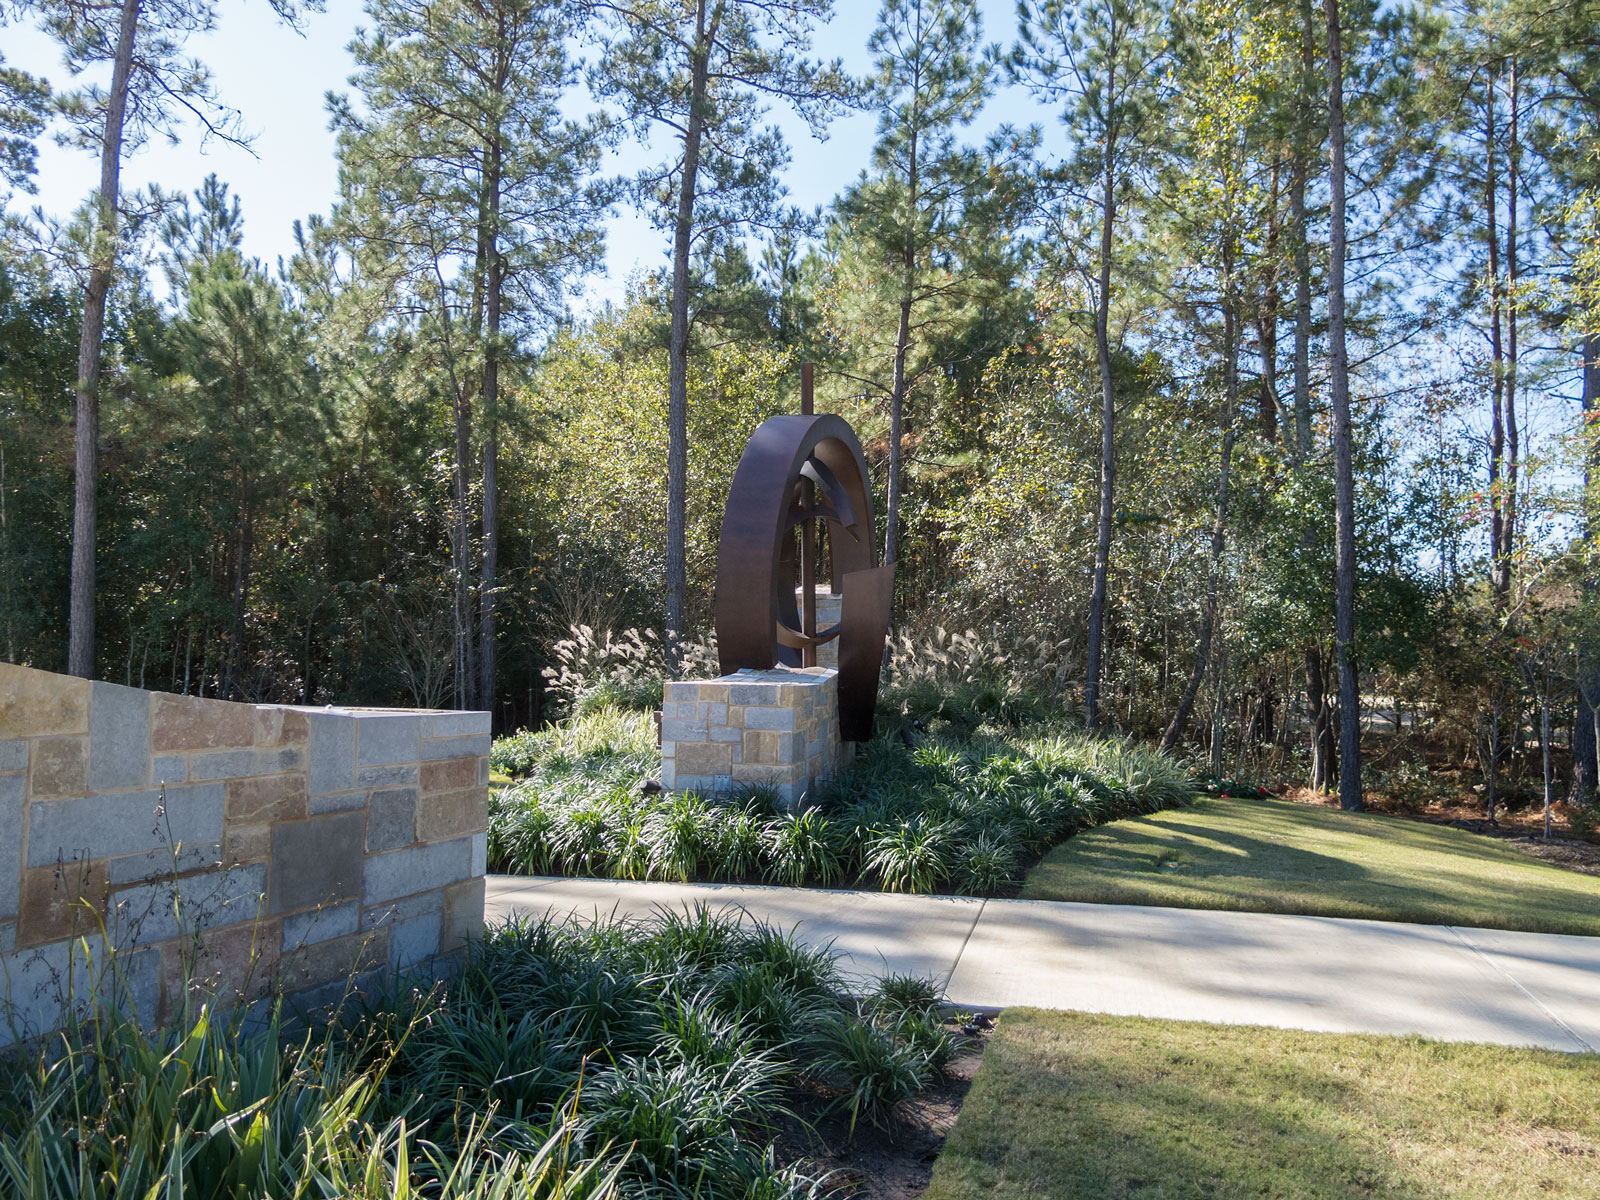 Side view of entry monument with internally illuminated, custom fabricated aluminum sculptural element and halo-lit channel letters.